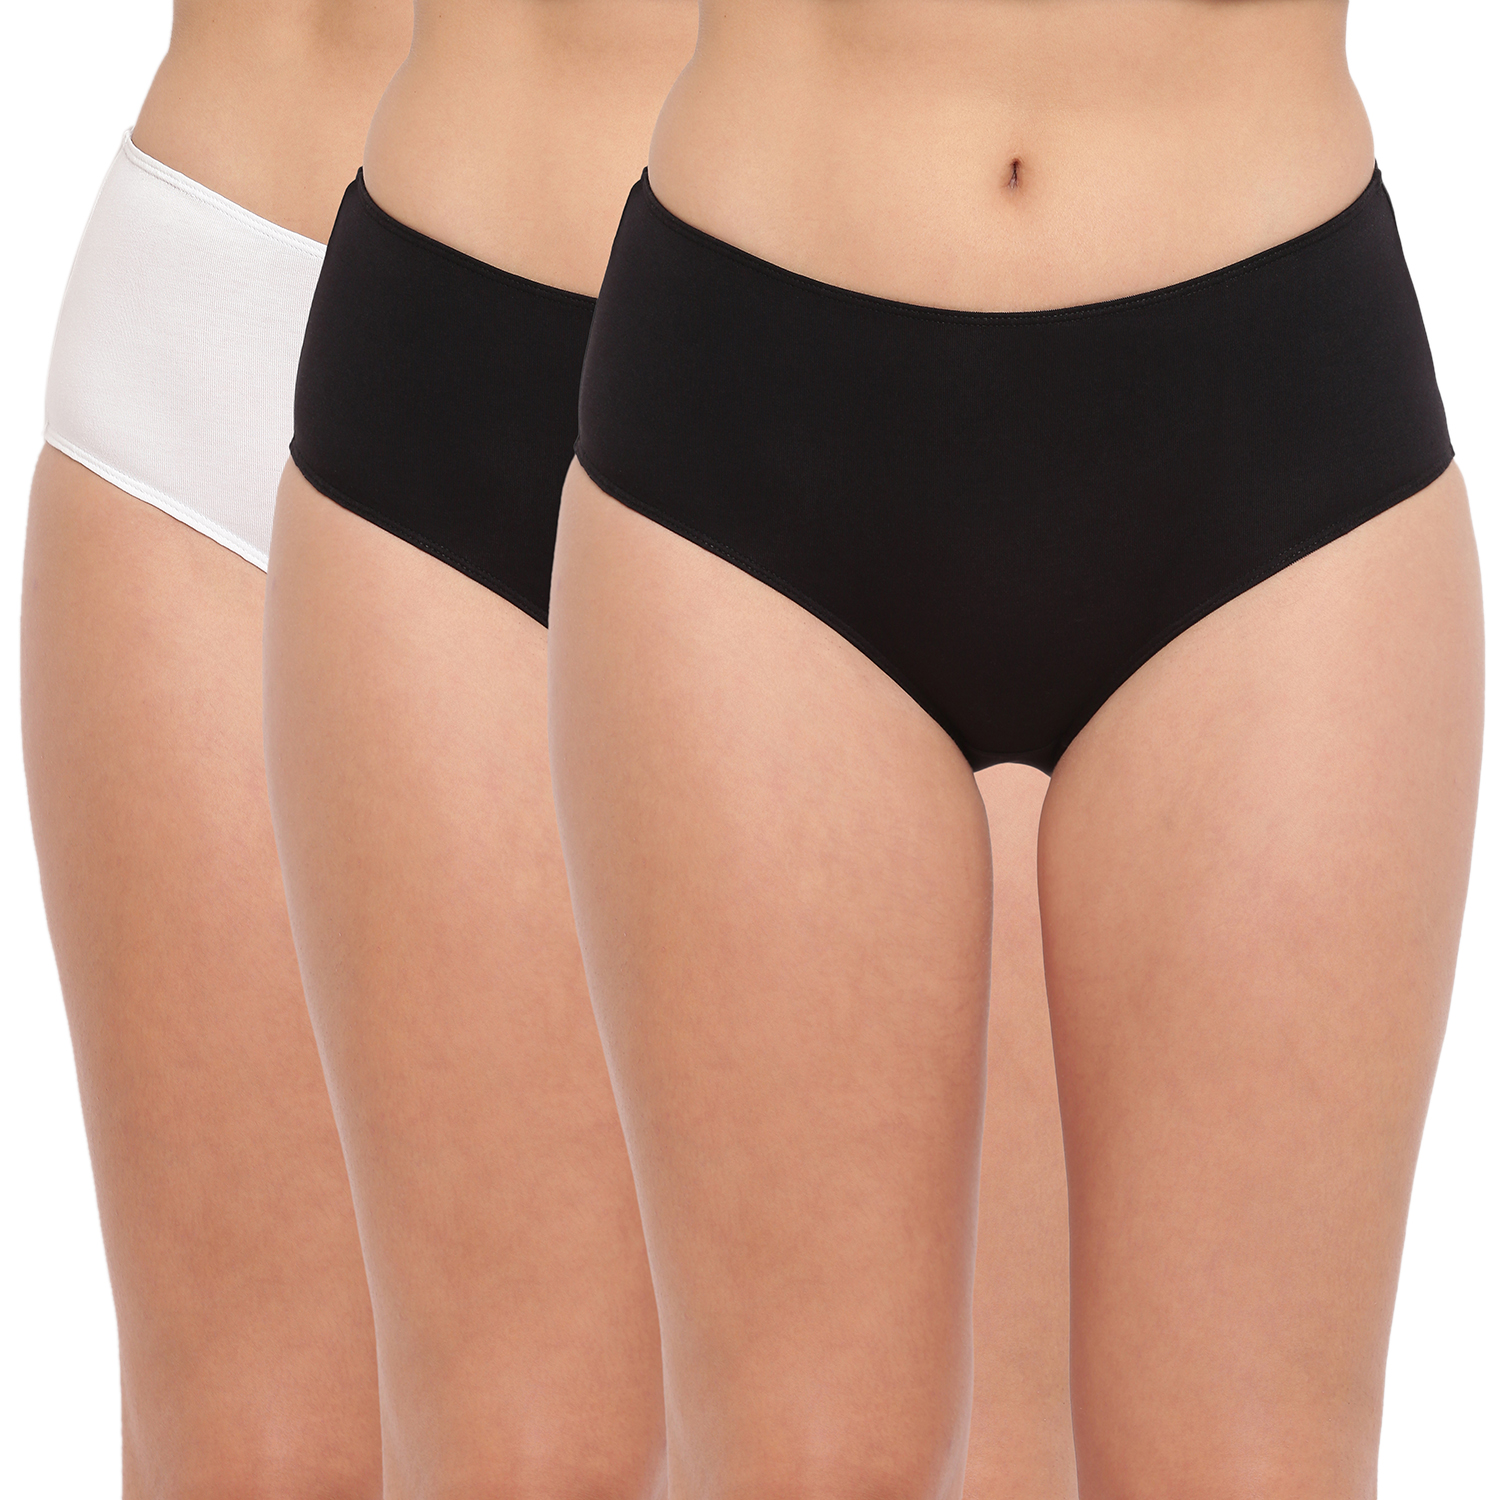 BASIICS by La Intimo | Tease 2 Please Hipster/ Full Brief Black-White (Pack of 3)